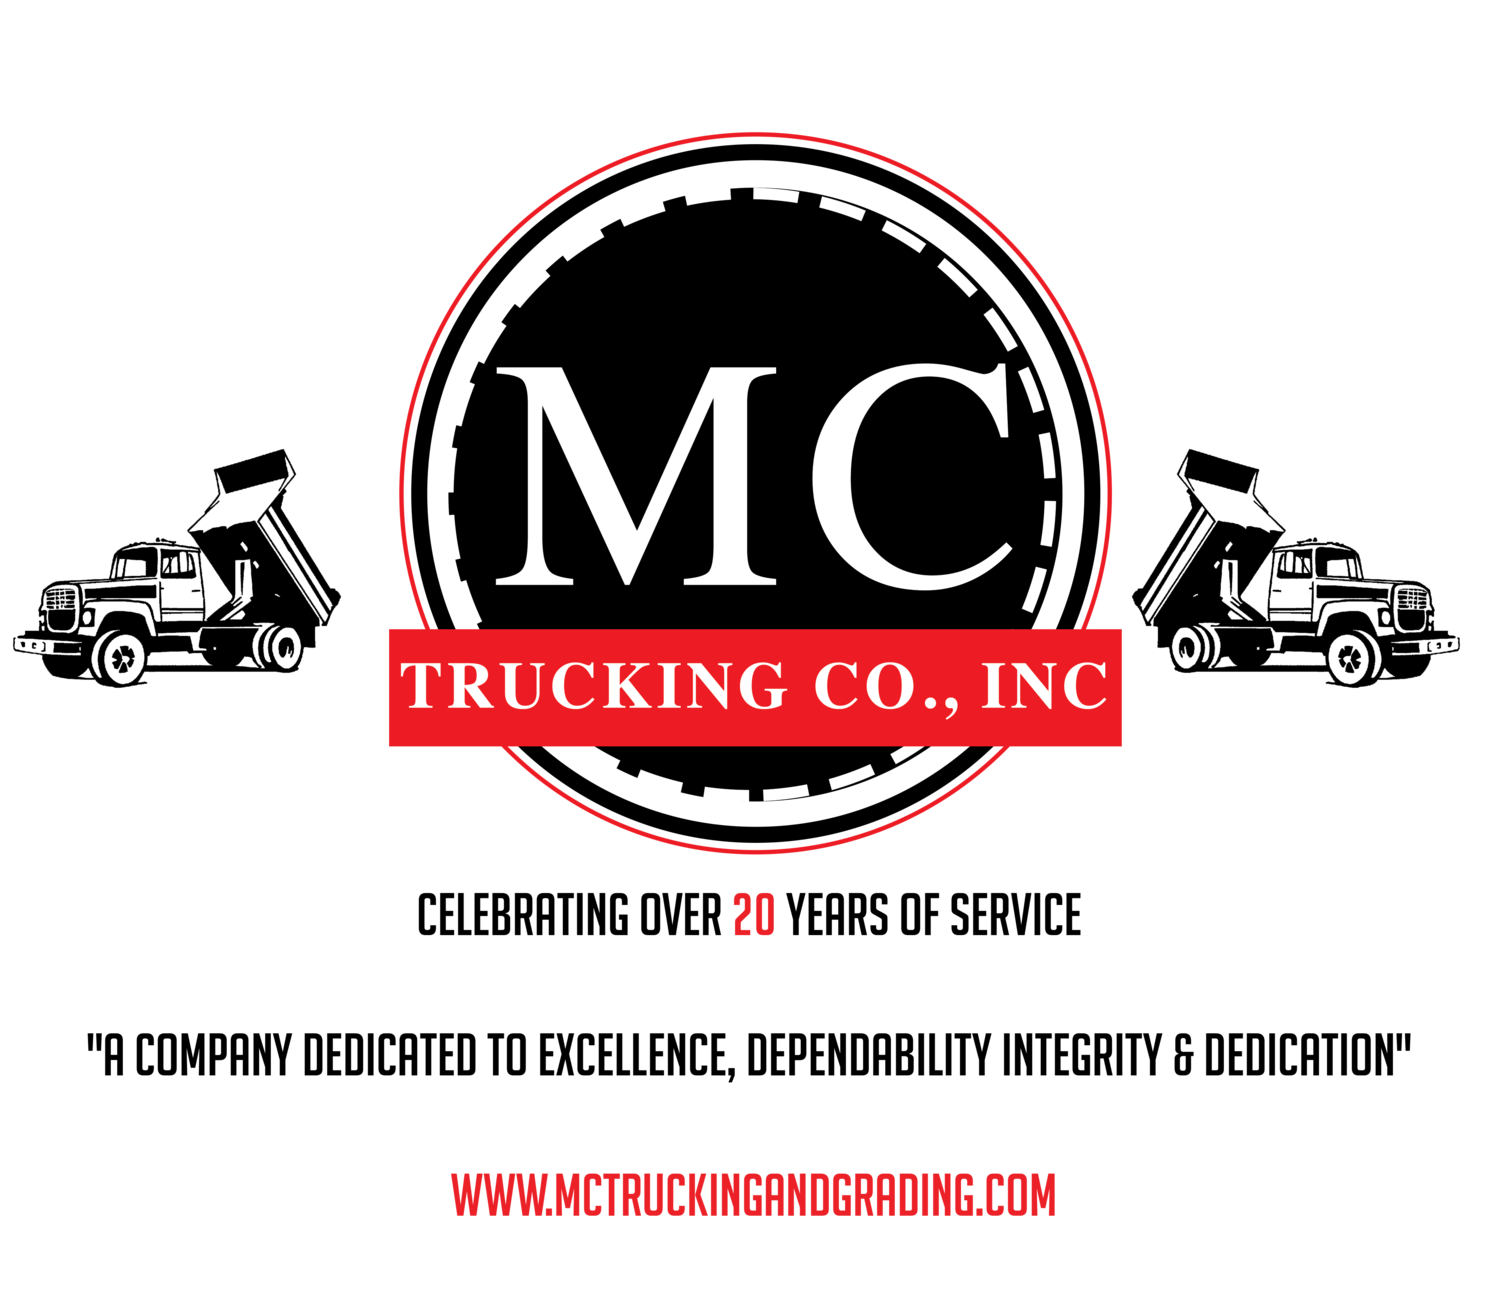 M.C. TRUCKING & GRADING CO., INC.